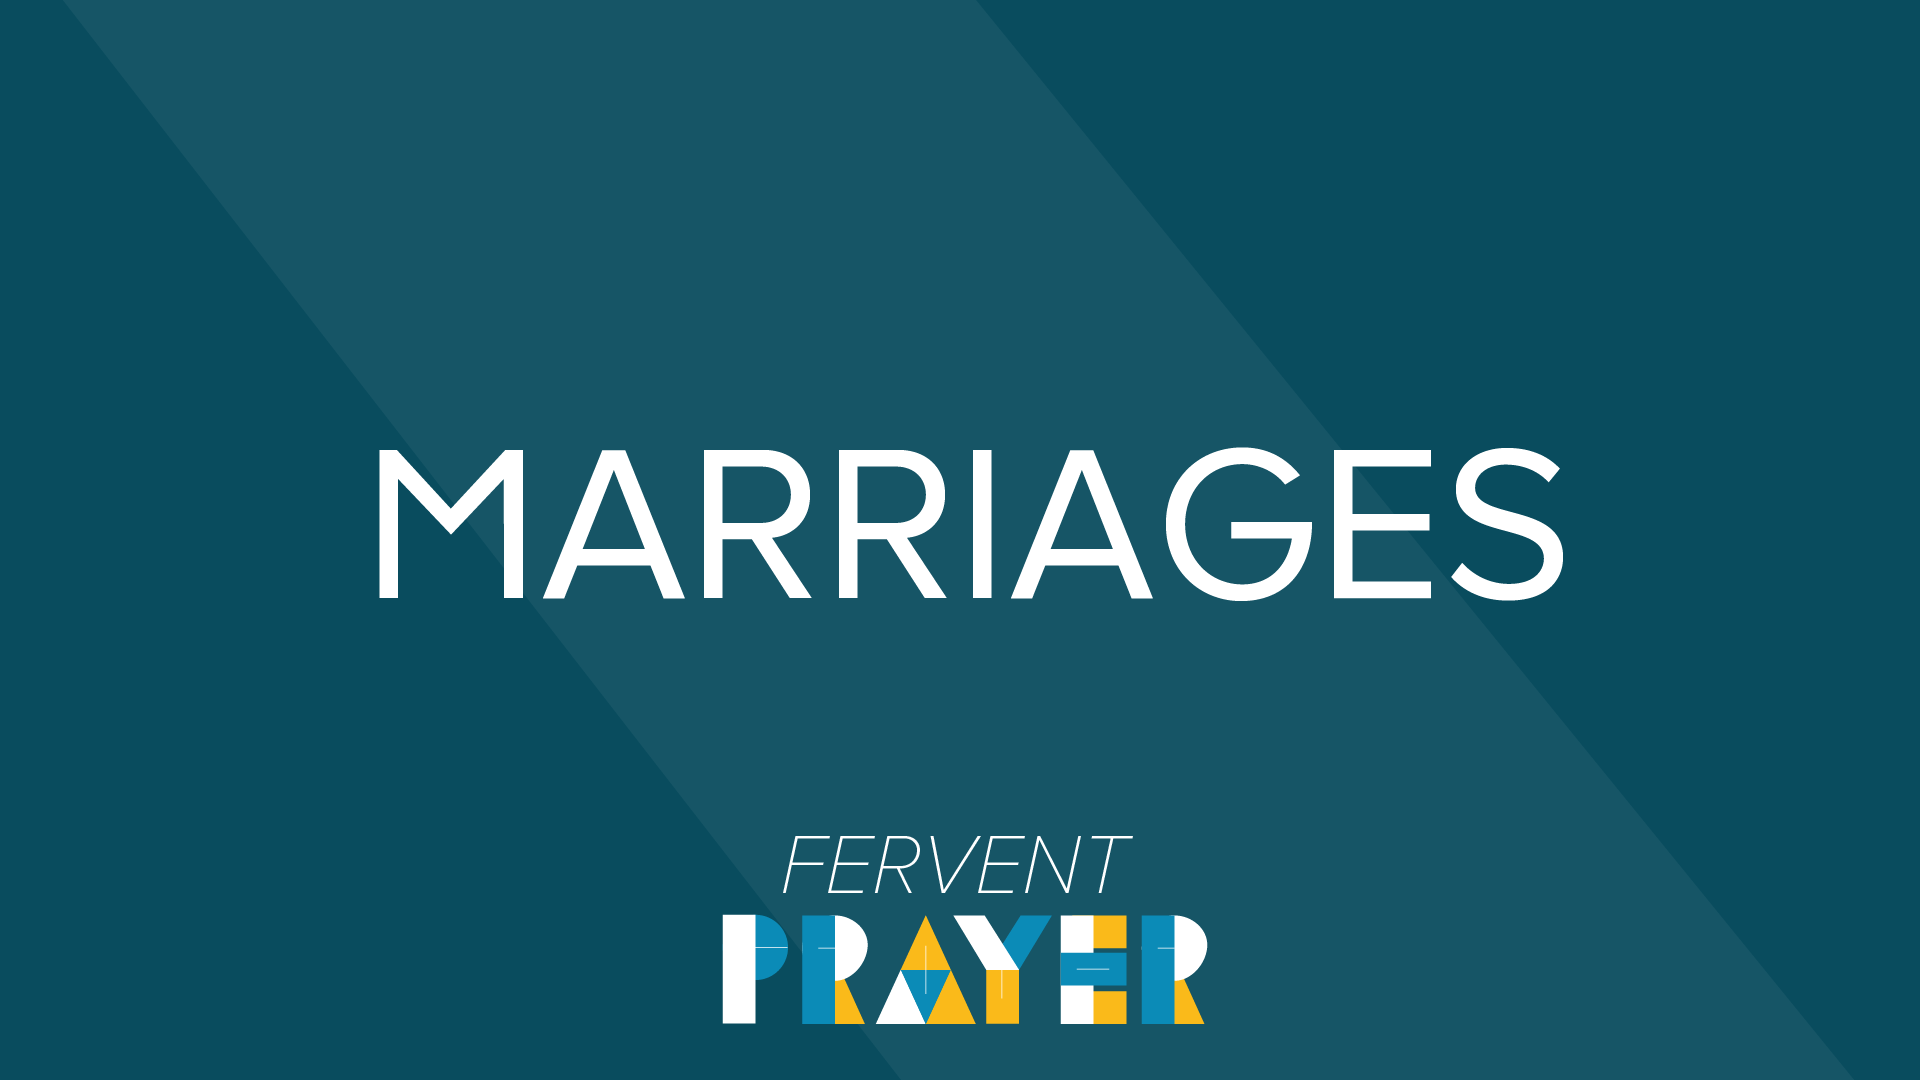 Fervent Prayer Marriages.png